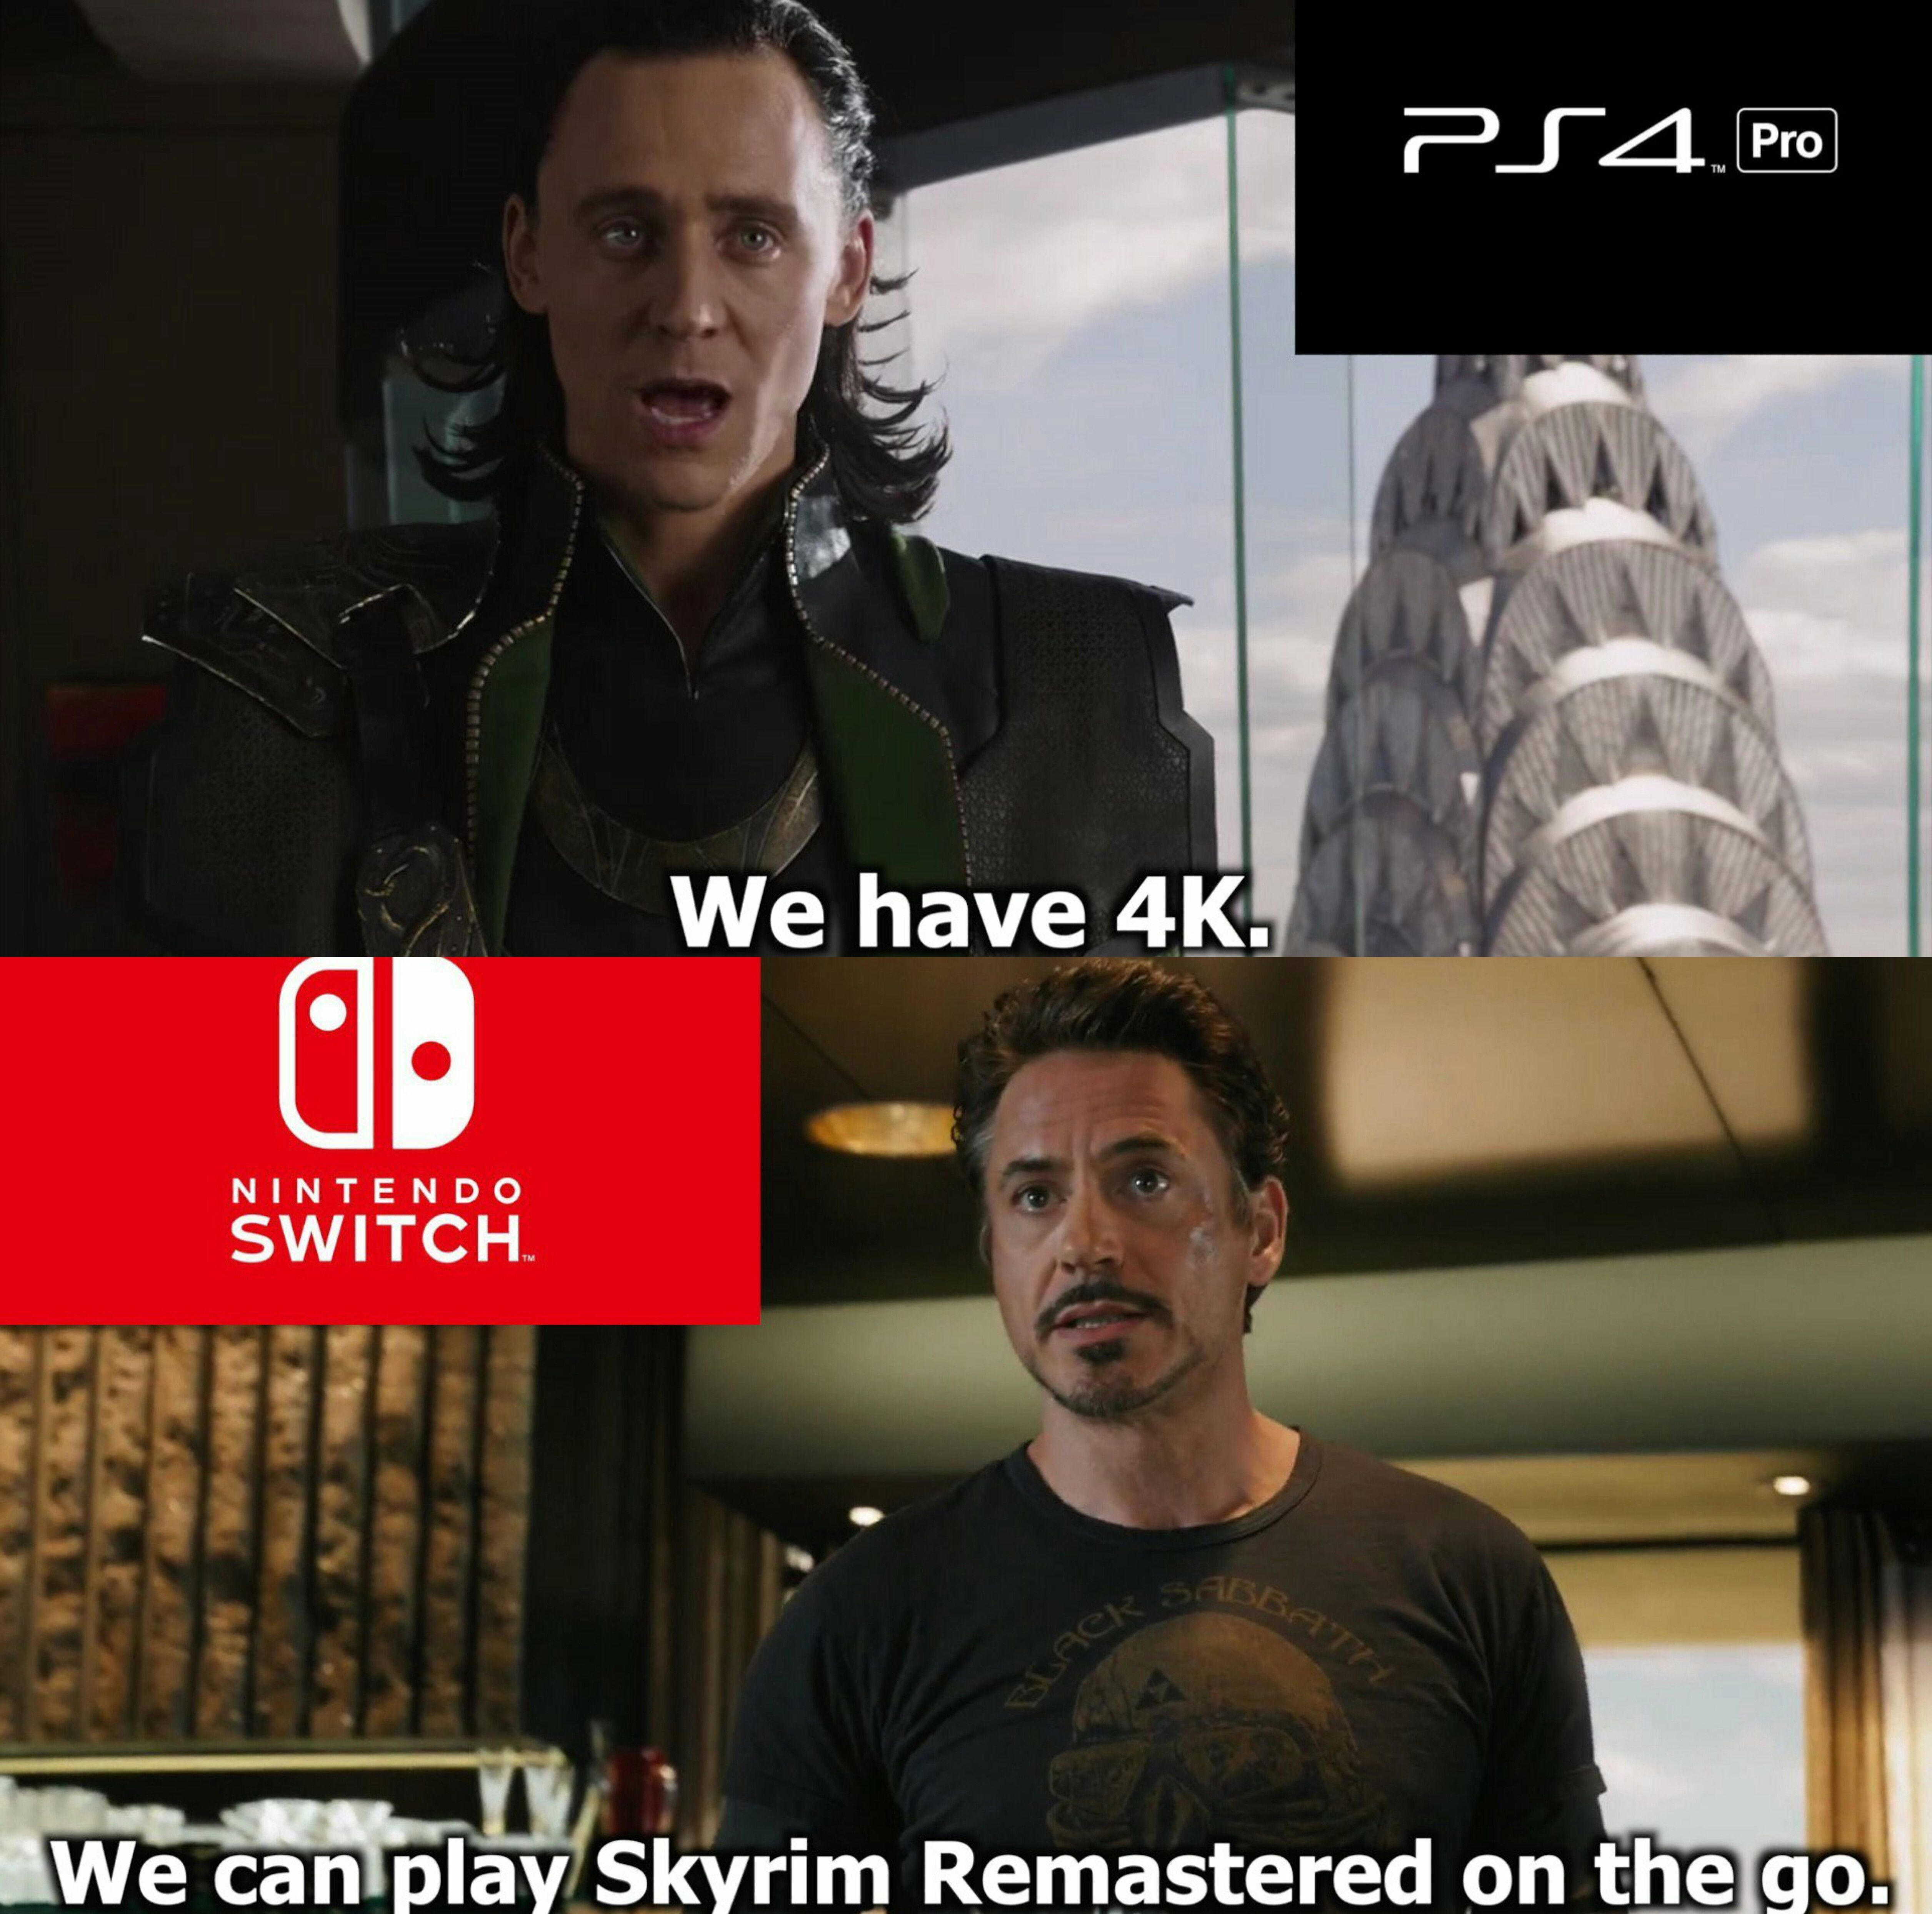 Ps4 Pro Vs Nintendo Switch Nintendoswitch With Images